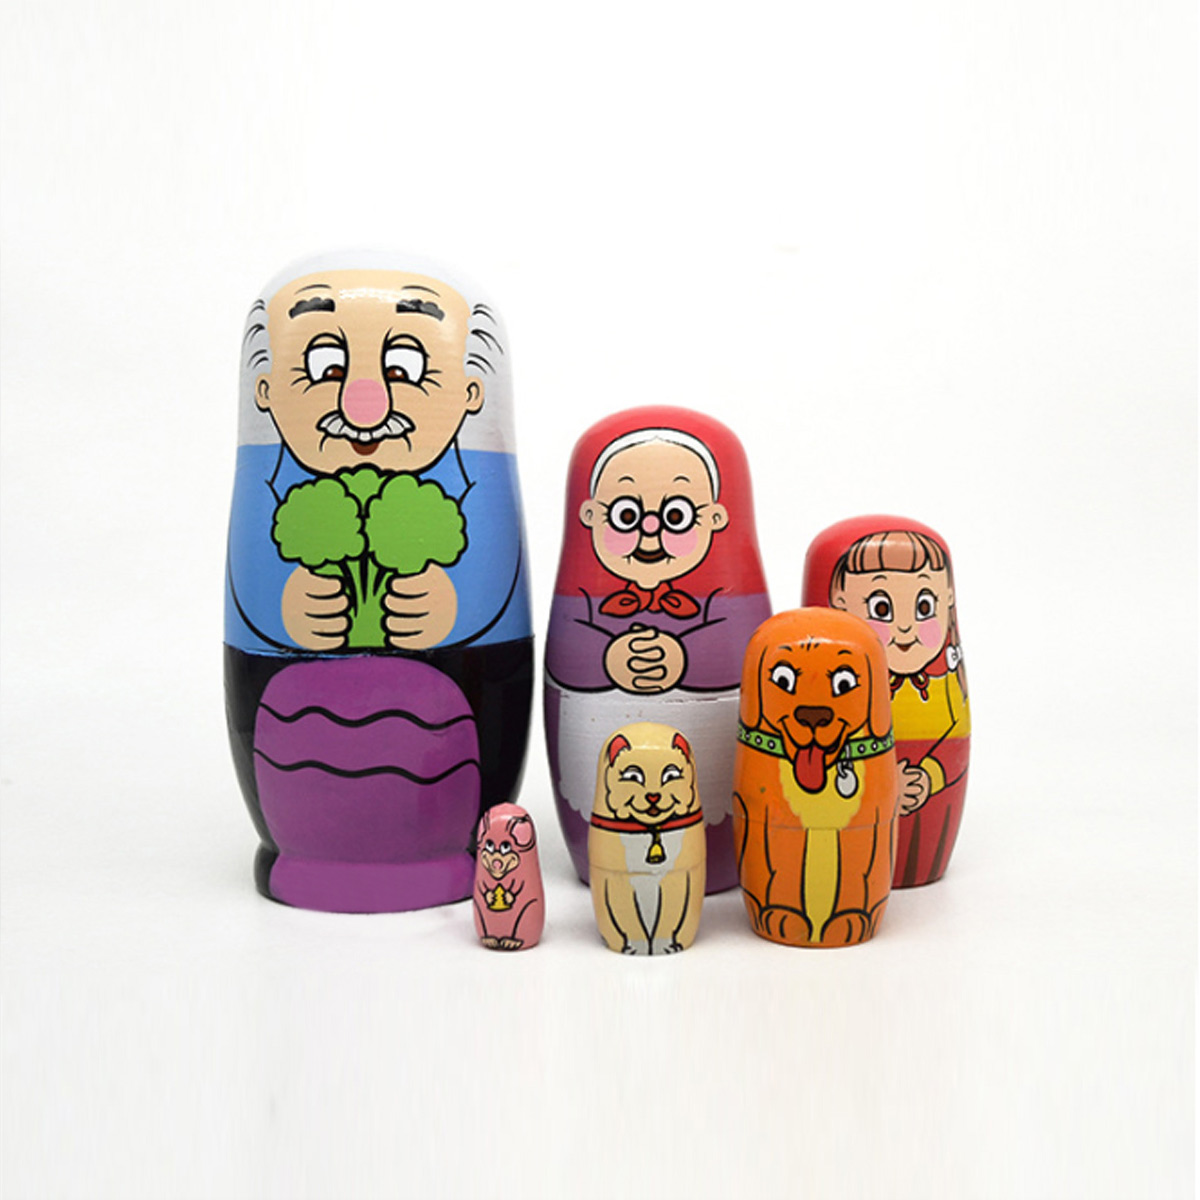 6PCS Russian Wooden Nesting Doll Happy Family Handcraft Decoration Christmas Gifts